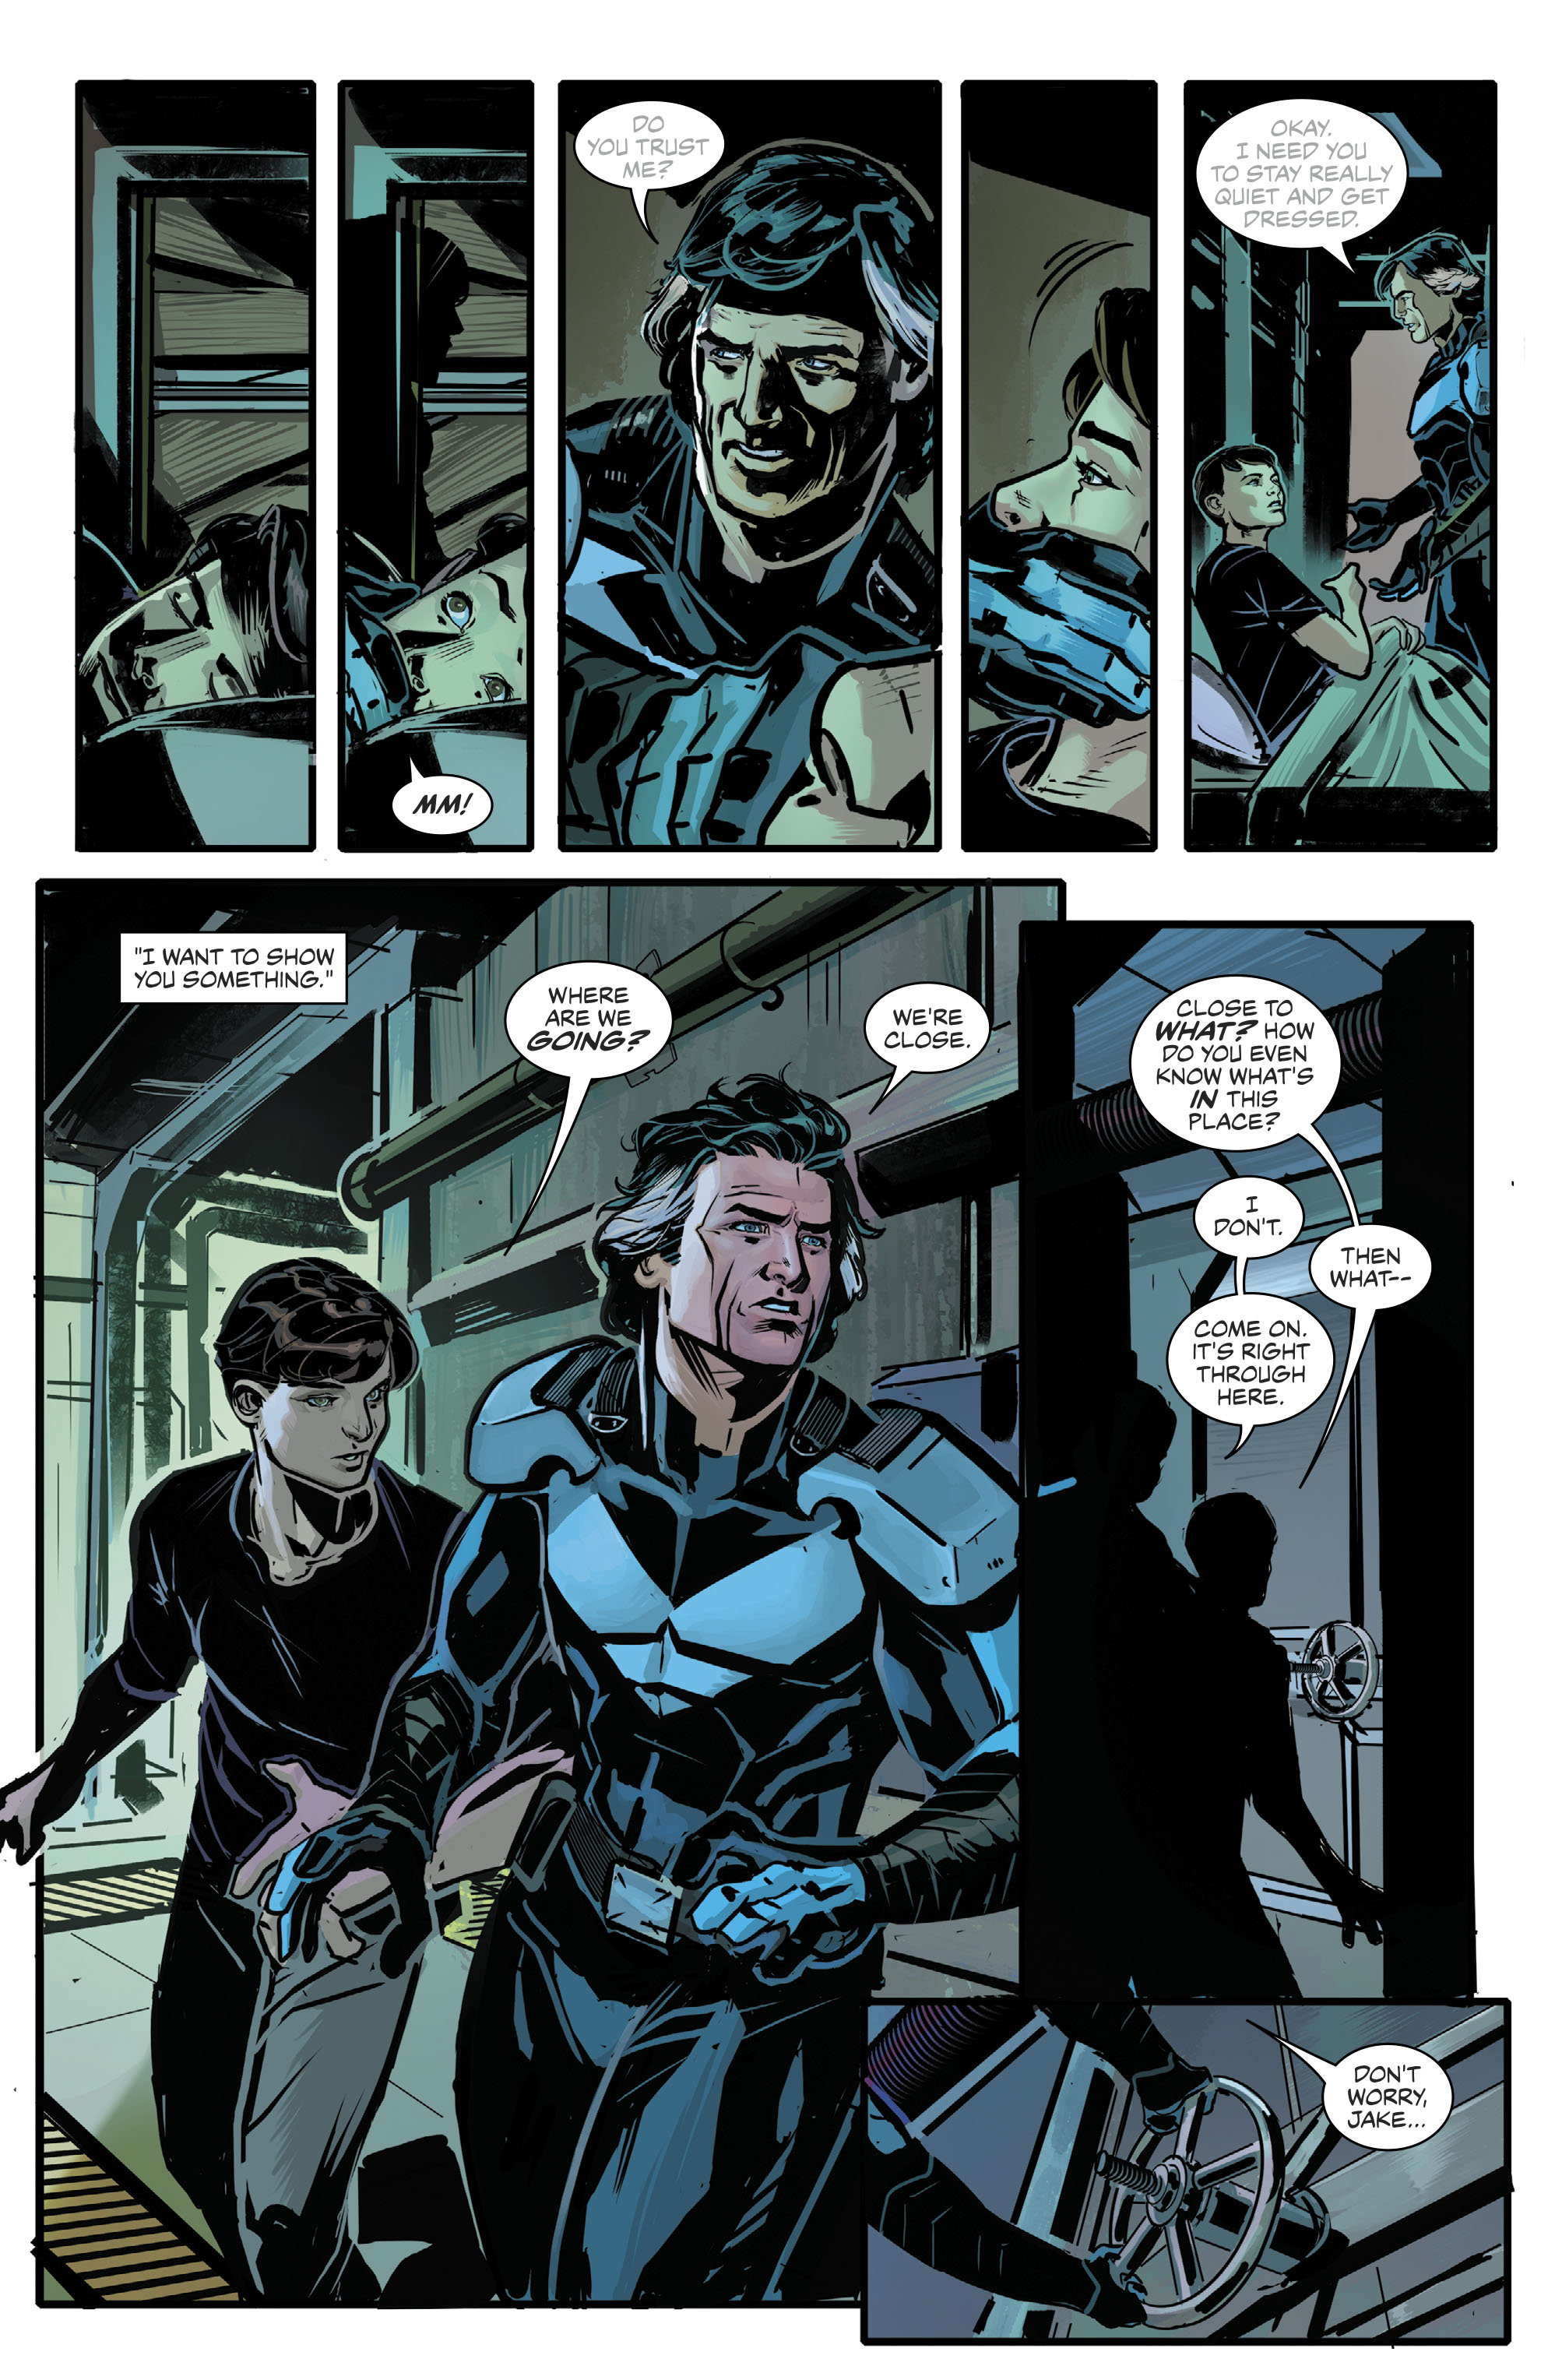 Nightwing: The New Order chap 6 pic 5